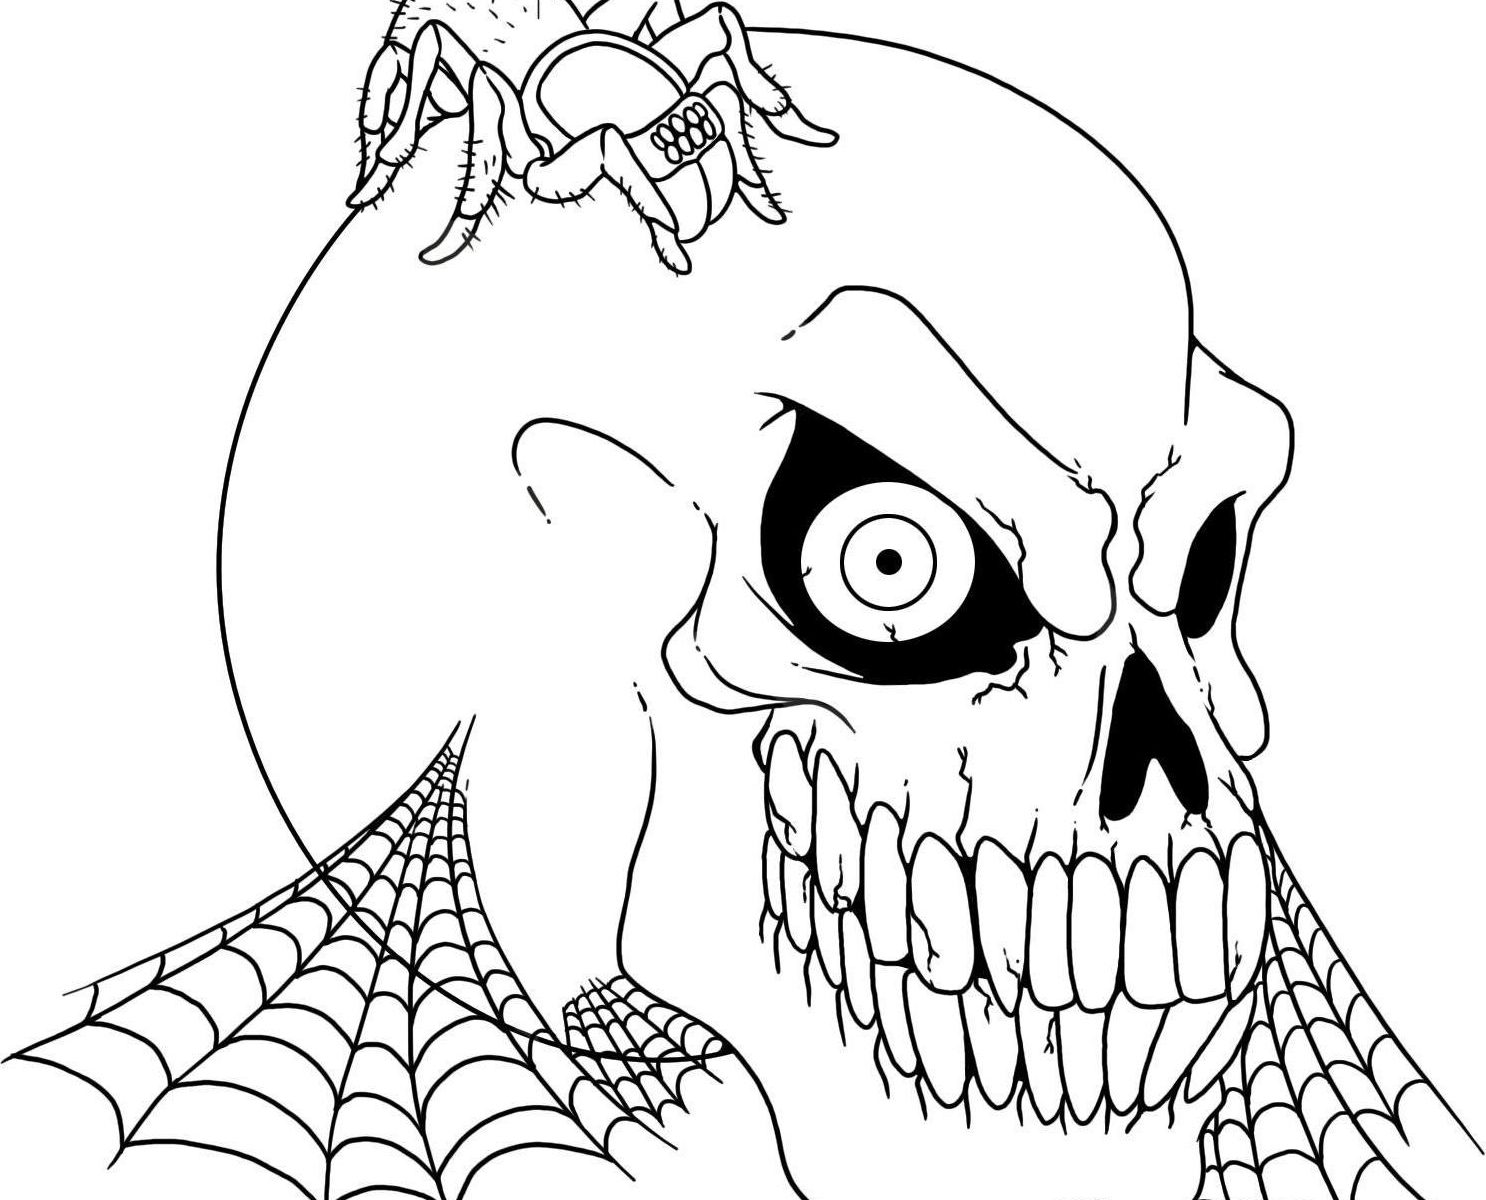 1486x1200 Halloween Printable Coloring Pages Happy Pictures Creepy